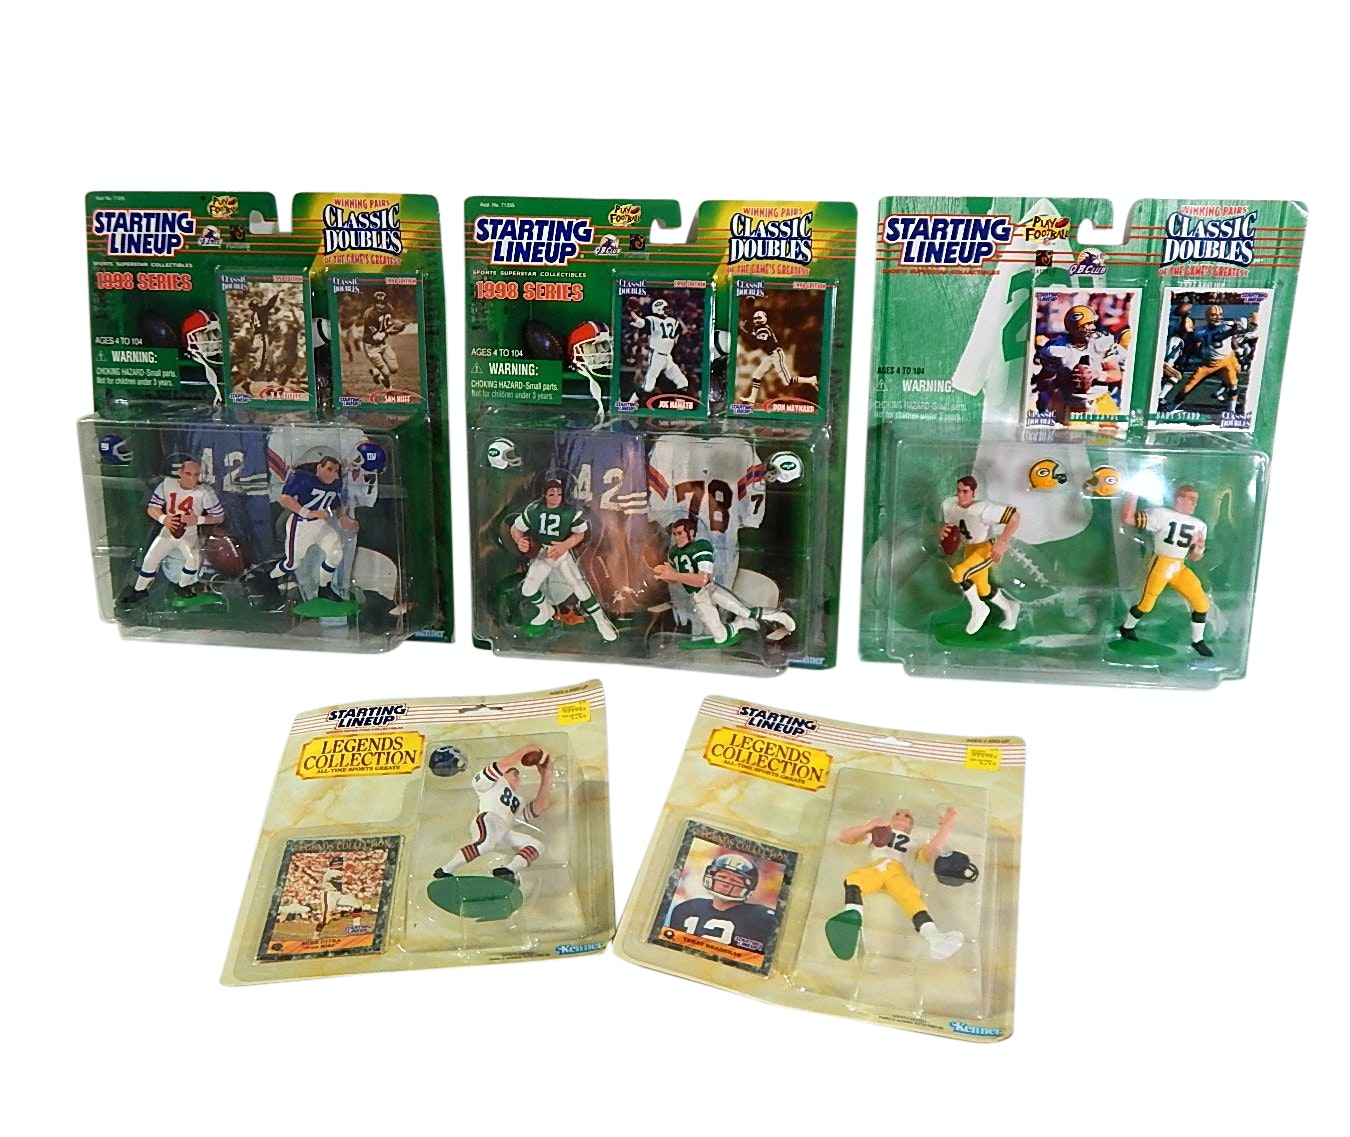 1989 and 1997 Kenner Starting Lineup Action Figures with Bradshaw, Starr